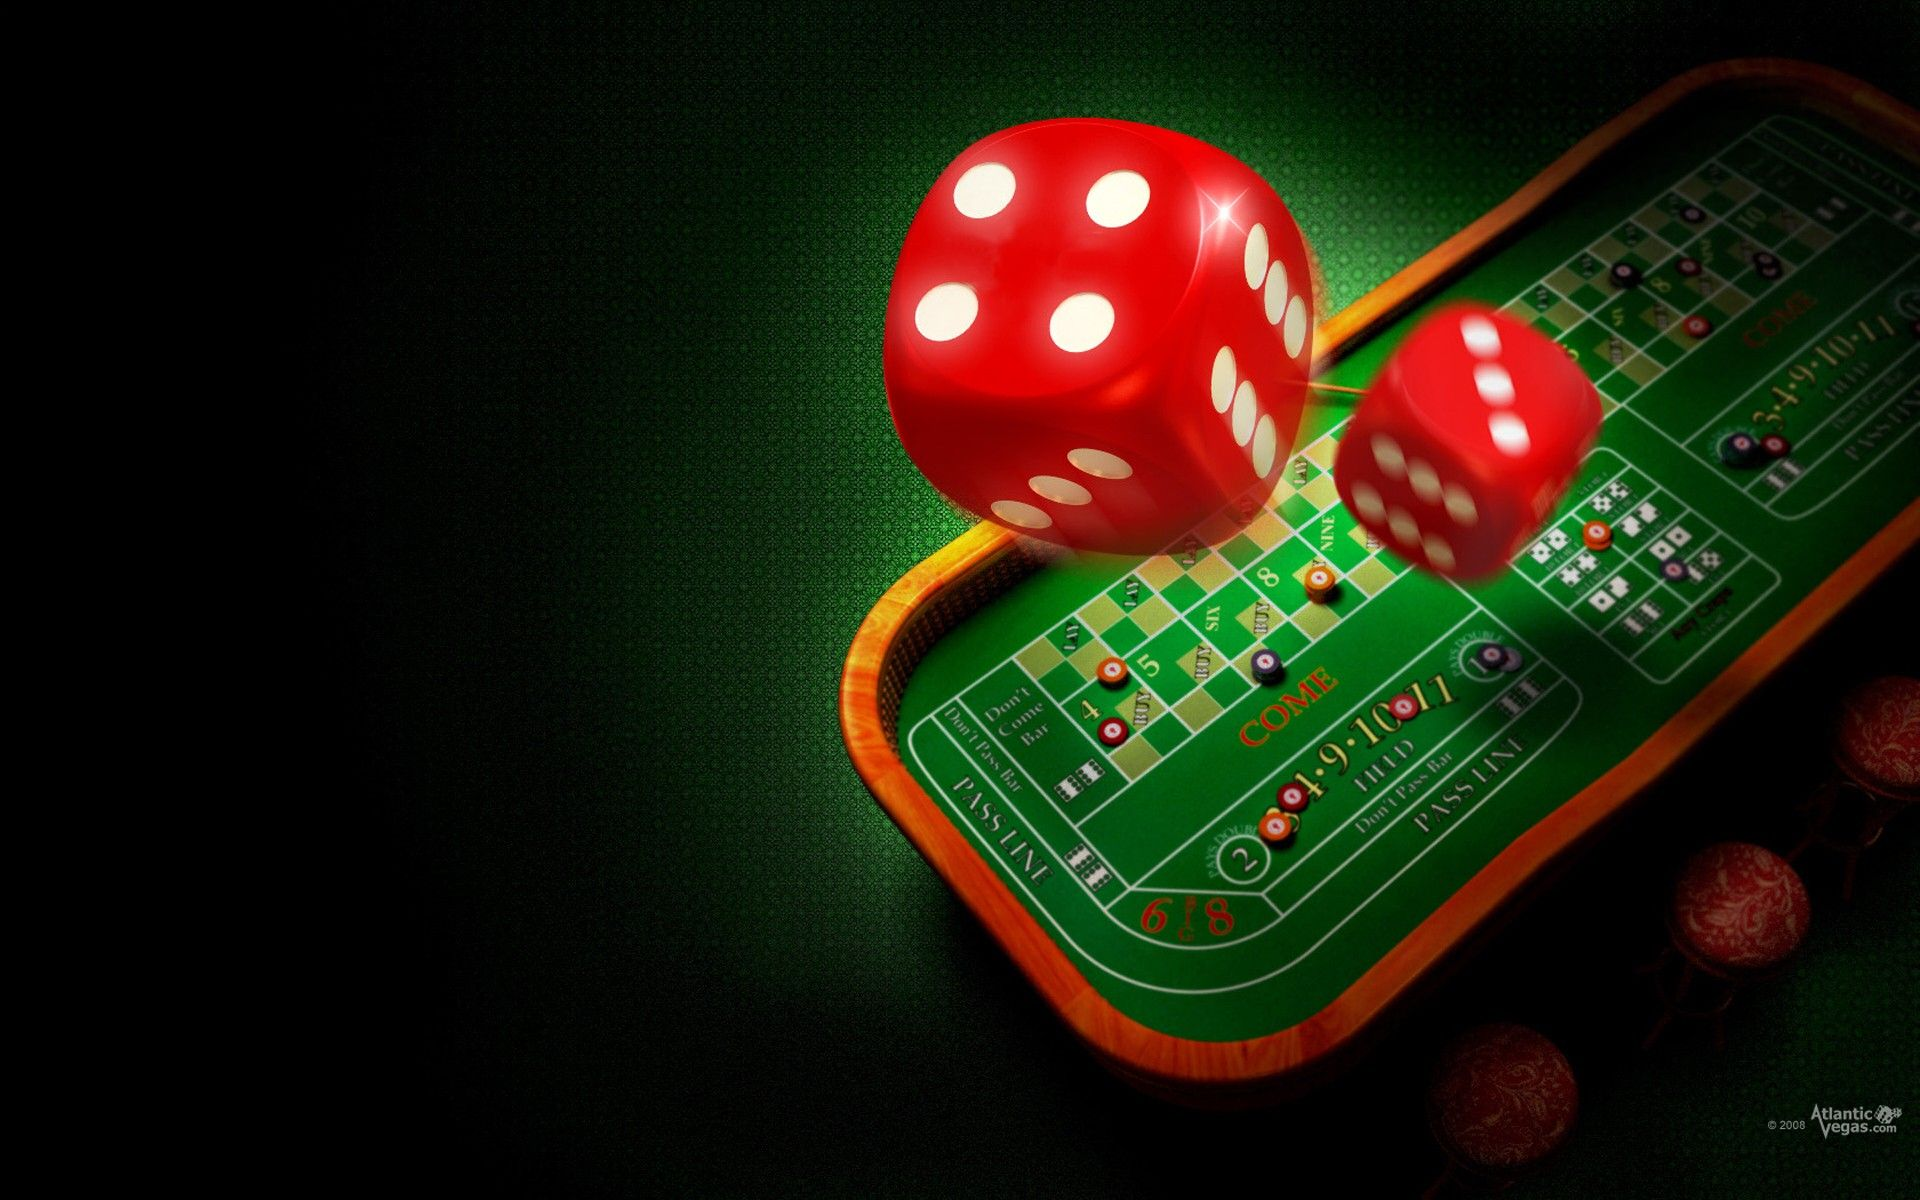 Need A Thriving Business? Concentrate On Gambling!